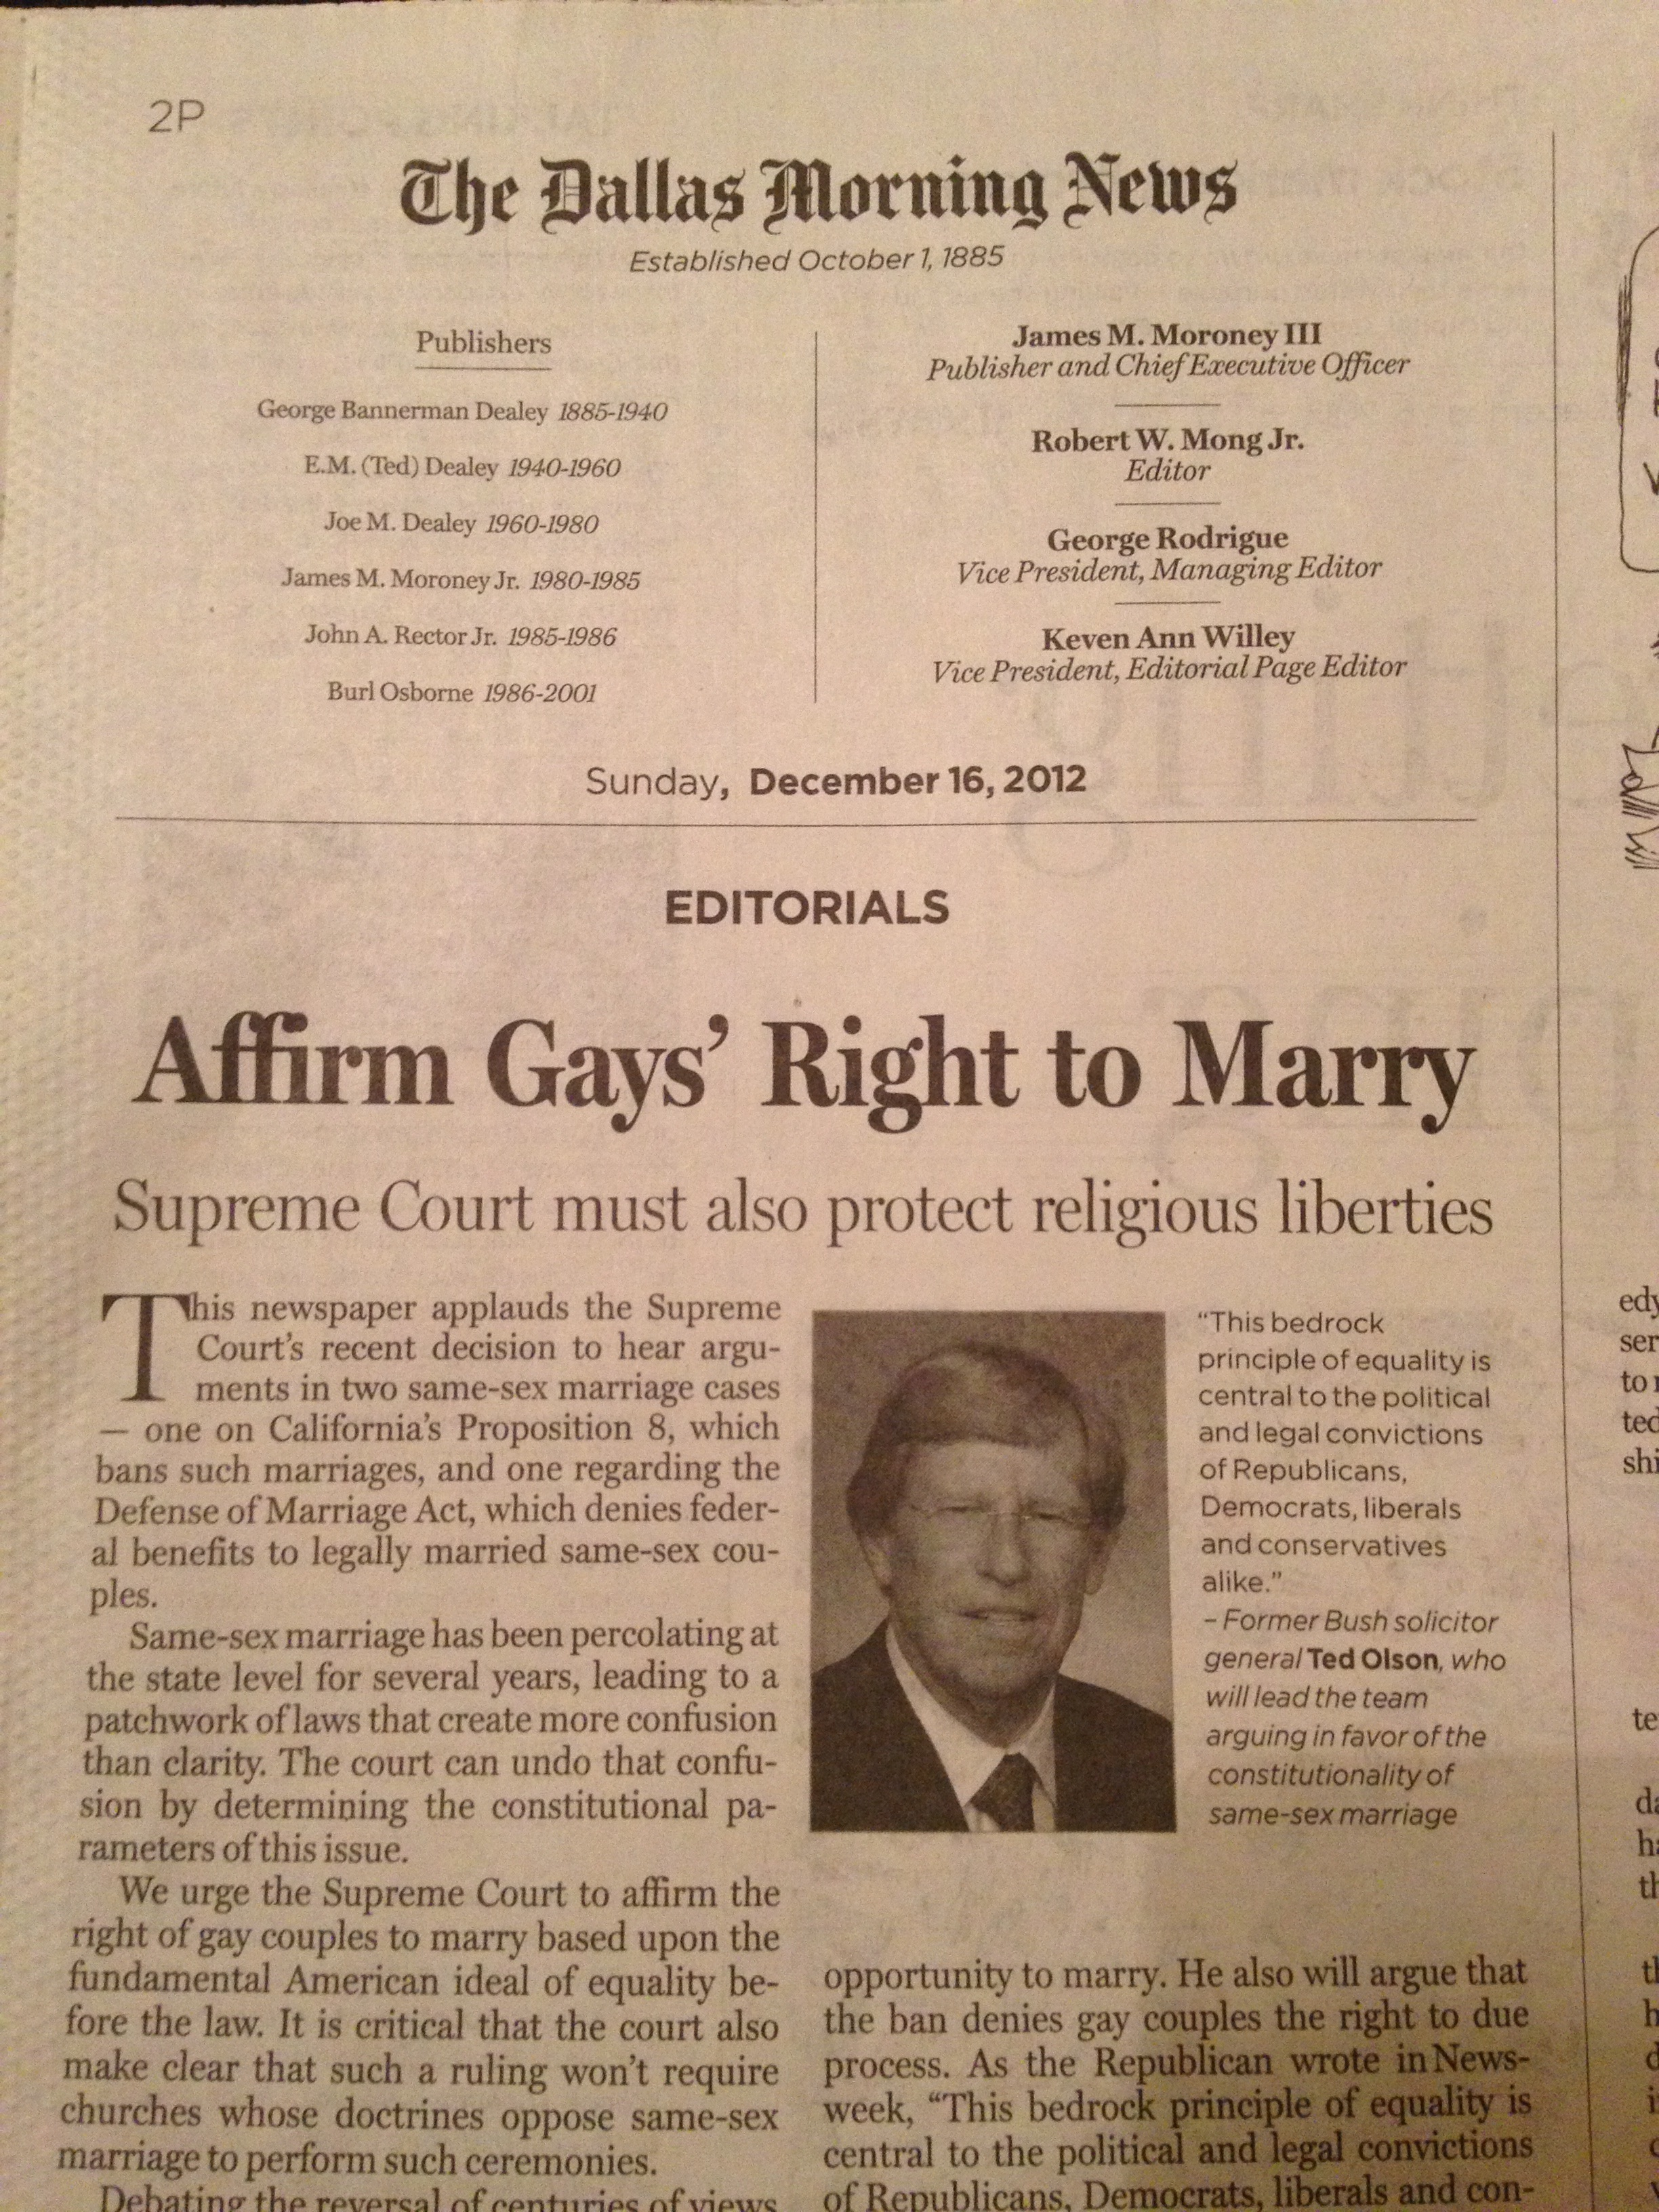 UPDATED: The Dallas Morning News endorses marriage equality